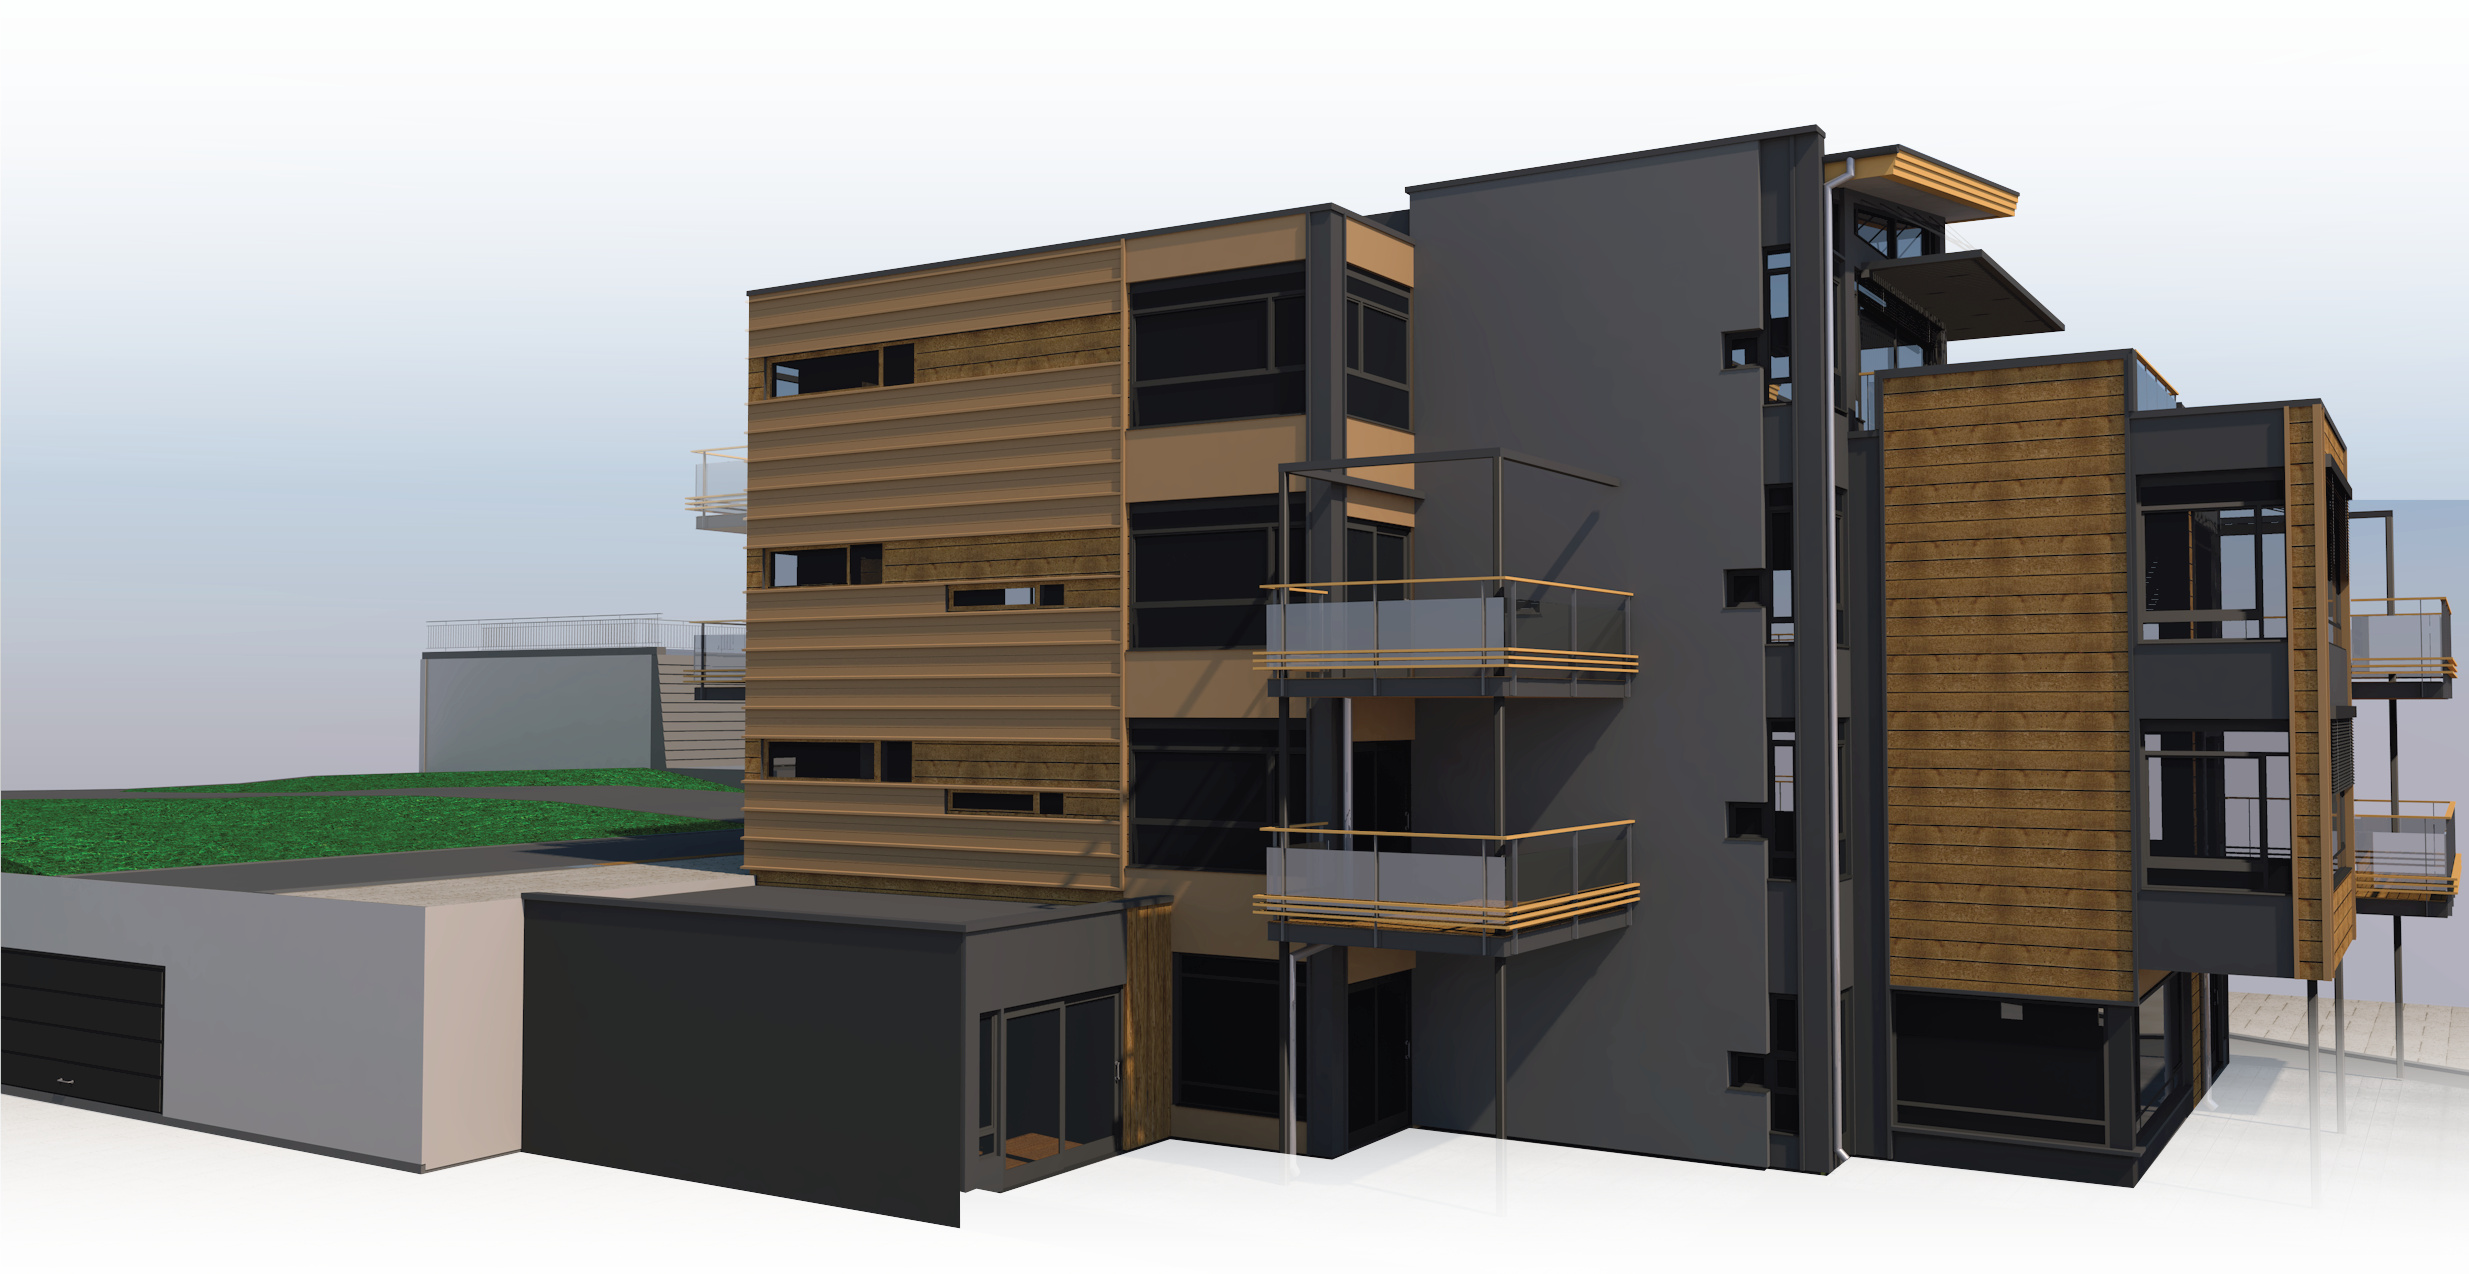 Merveilleux This CAD Software Is Also Known For Its Ability To Store Large Amounts Of  Information In Your 3D Models. It Can Be Used To Design Buildings And  Interiors As ...